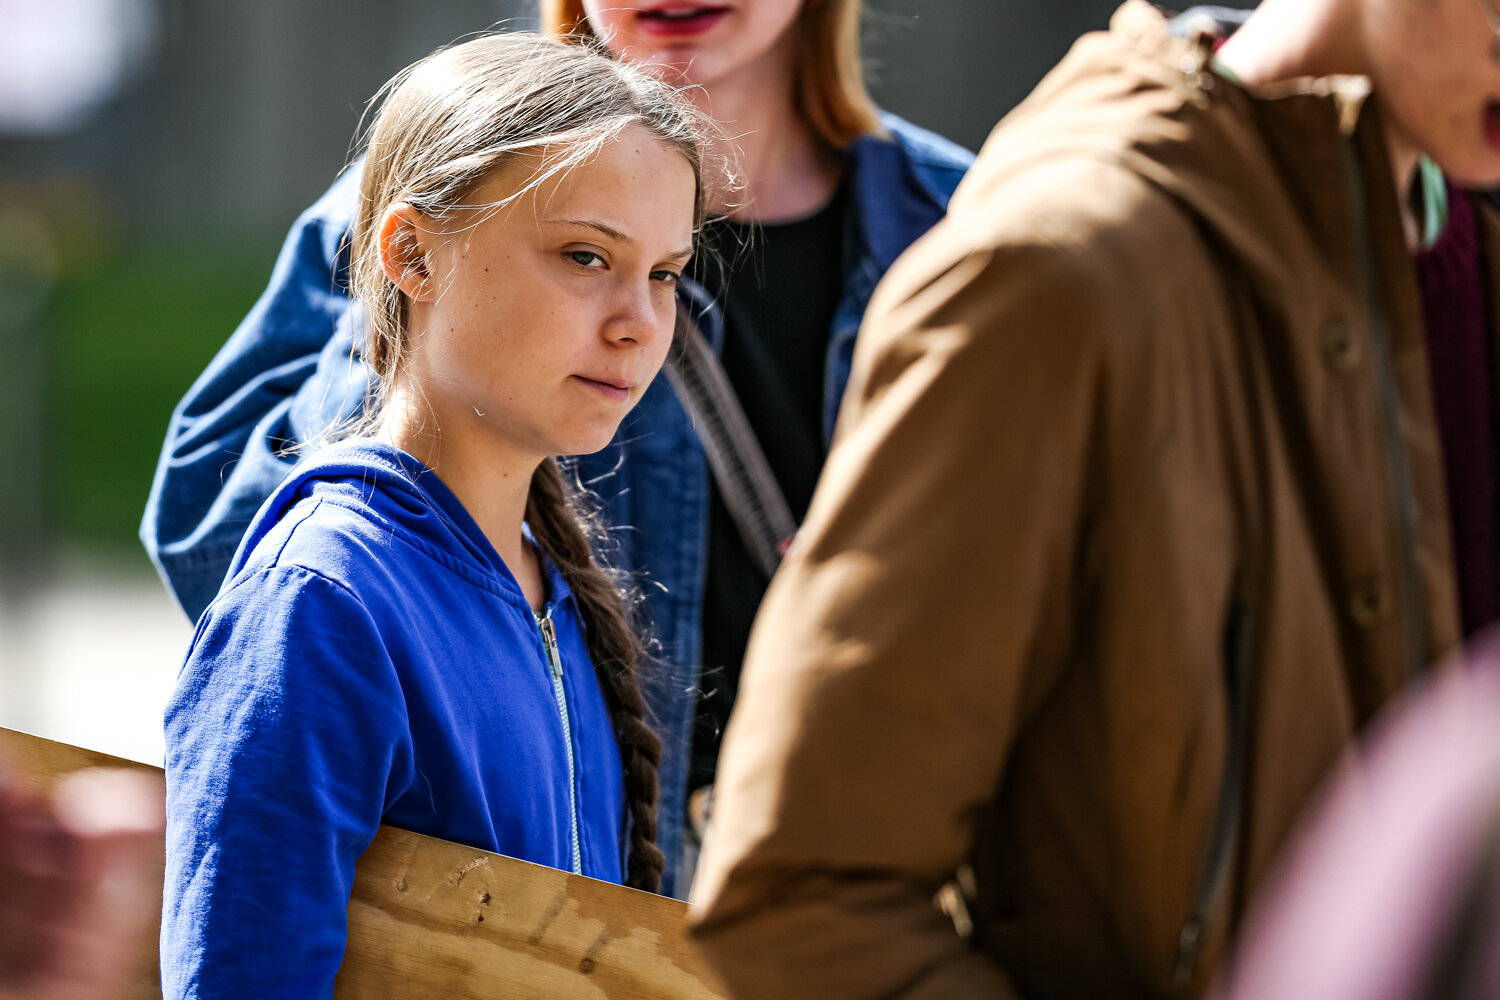 Swedish climate activist Greta Thunberg walks down Iowa Ave. after speaking at the Iowa City Climate Strike in downtown Iowa City on Friday, Oct. 4, 2019.